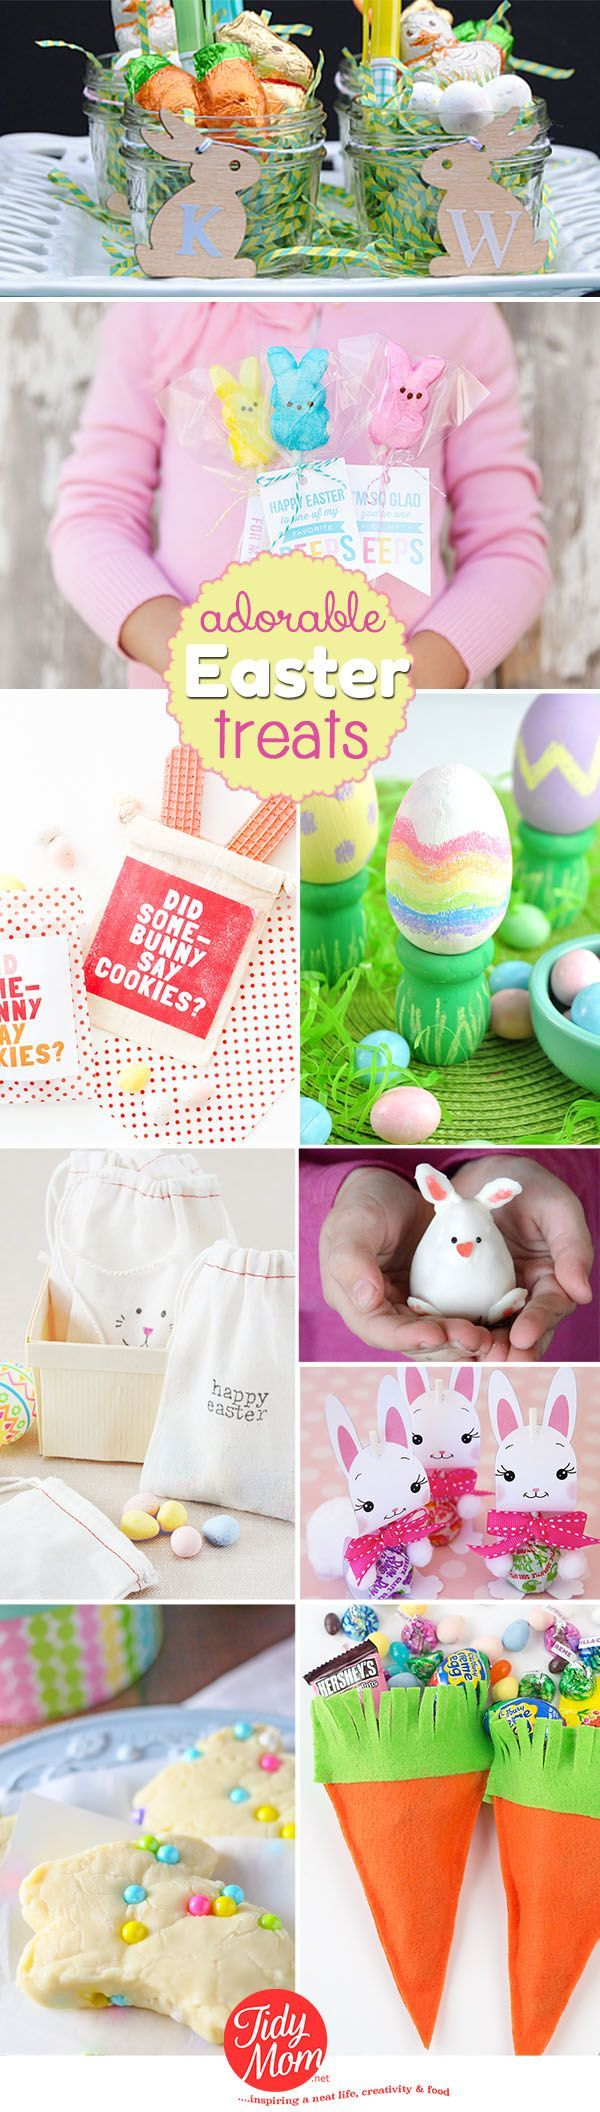 Easter treats to make and gift easter egg and easy these delicious and fun easter treats and crafts are easy to make negle Images